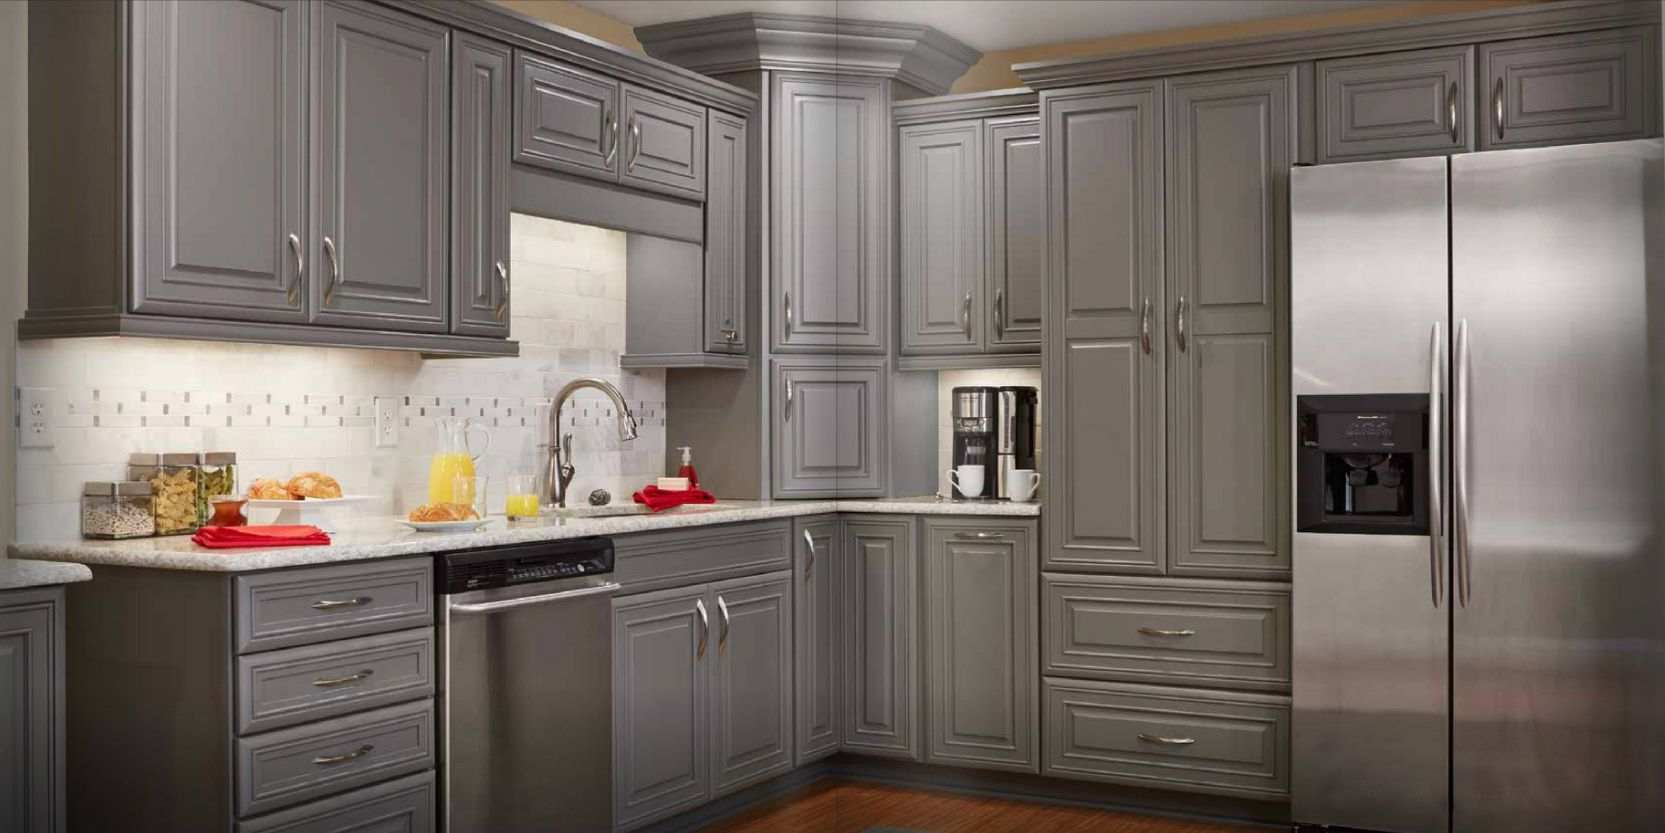 gray cabinets kitchen cabinet design ideas grey stained google search logan blvd